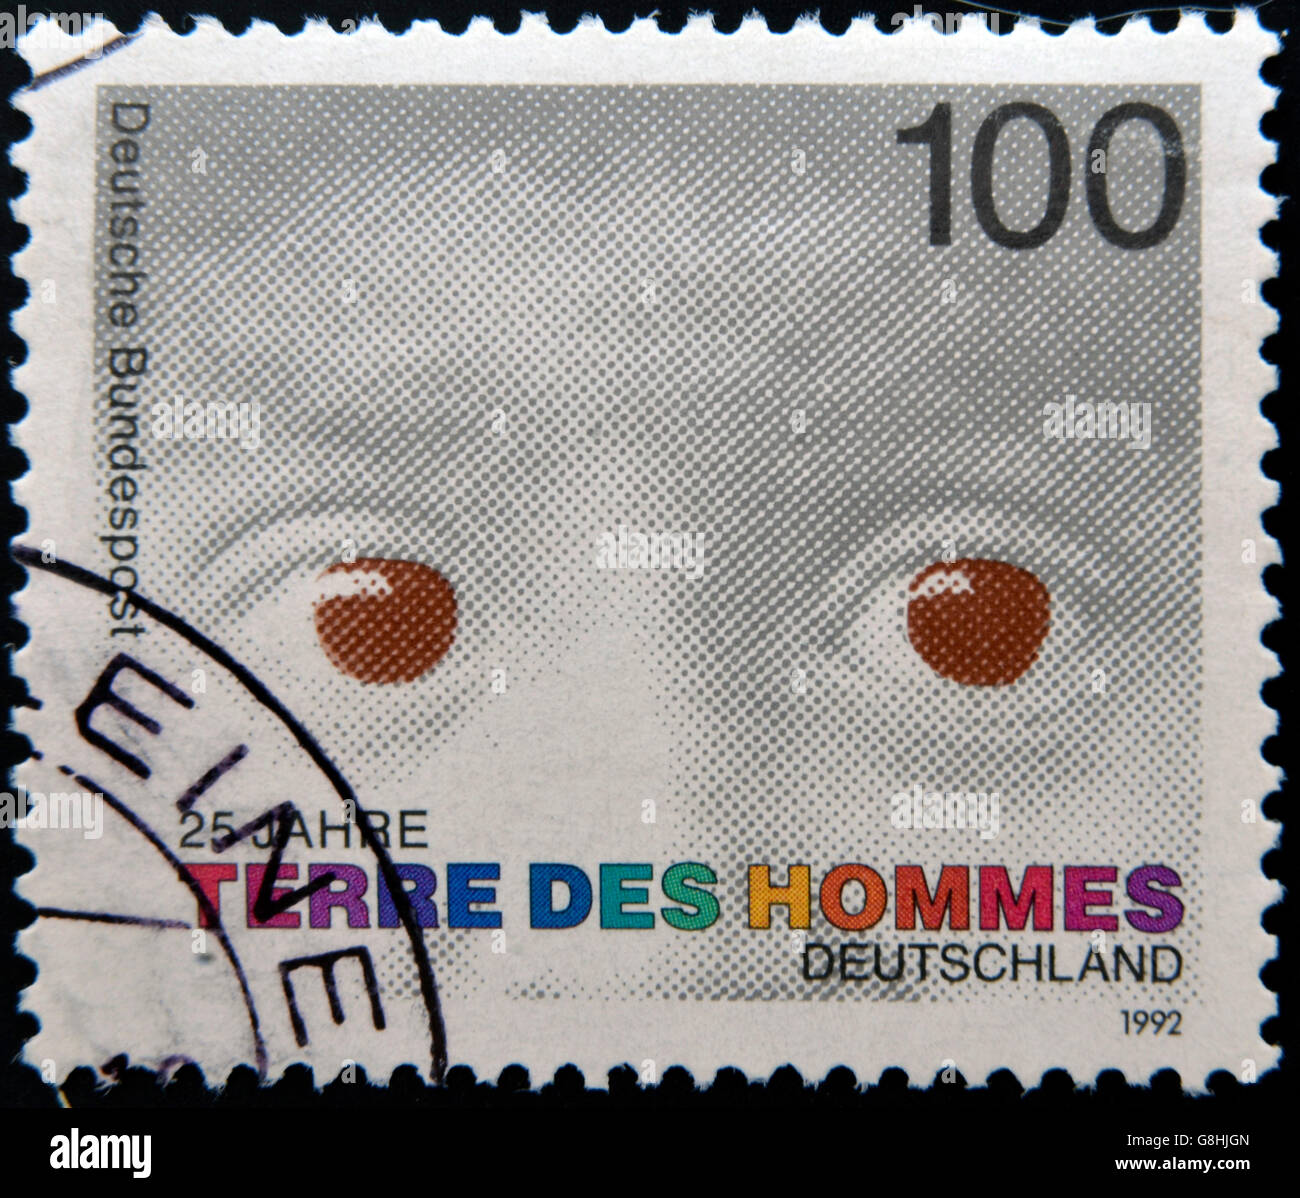 GERMANY - CIRCA 1992: A stamp printed in Germany dedicated to international federation 'terre des hommes' - Stock Image